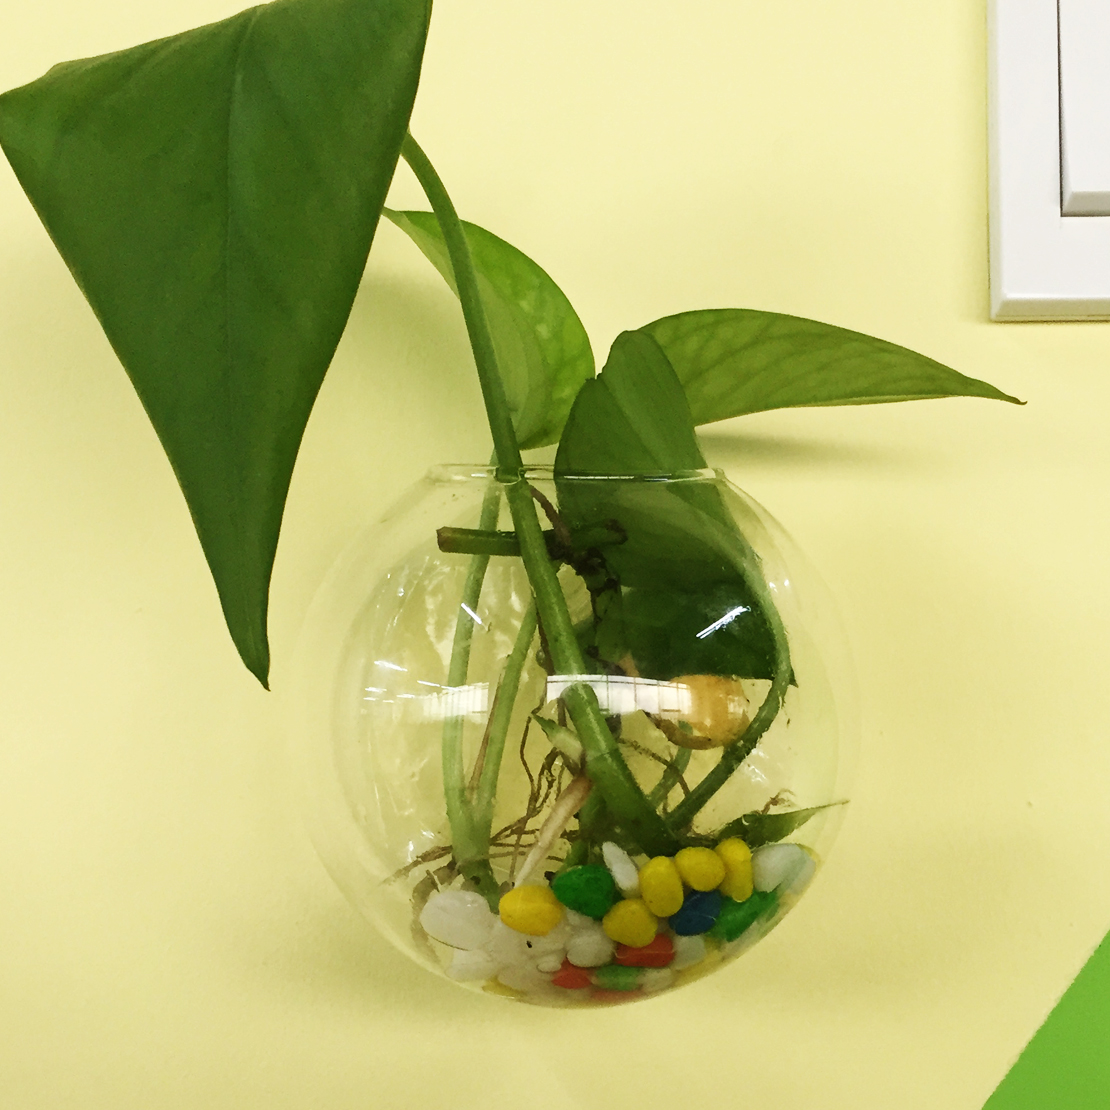 Wall hanging plant flower vase terrarium glass ball bottle fish image is loading wall hanging plant flower vase terrarium glass ball reviewsmspy